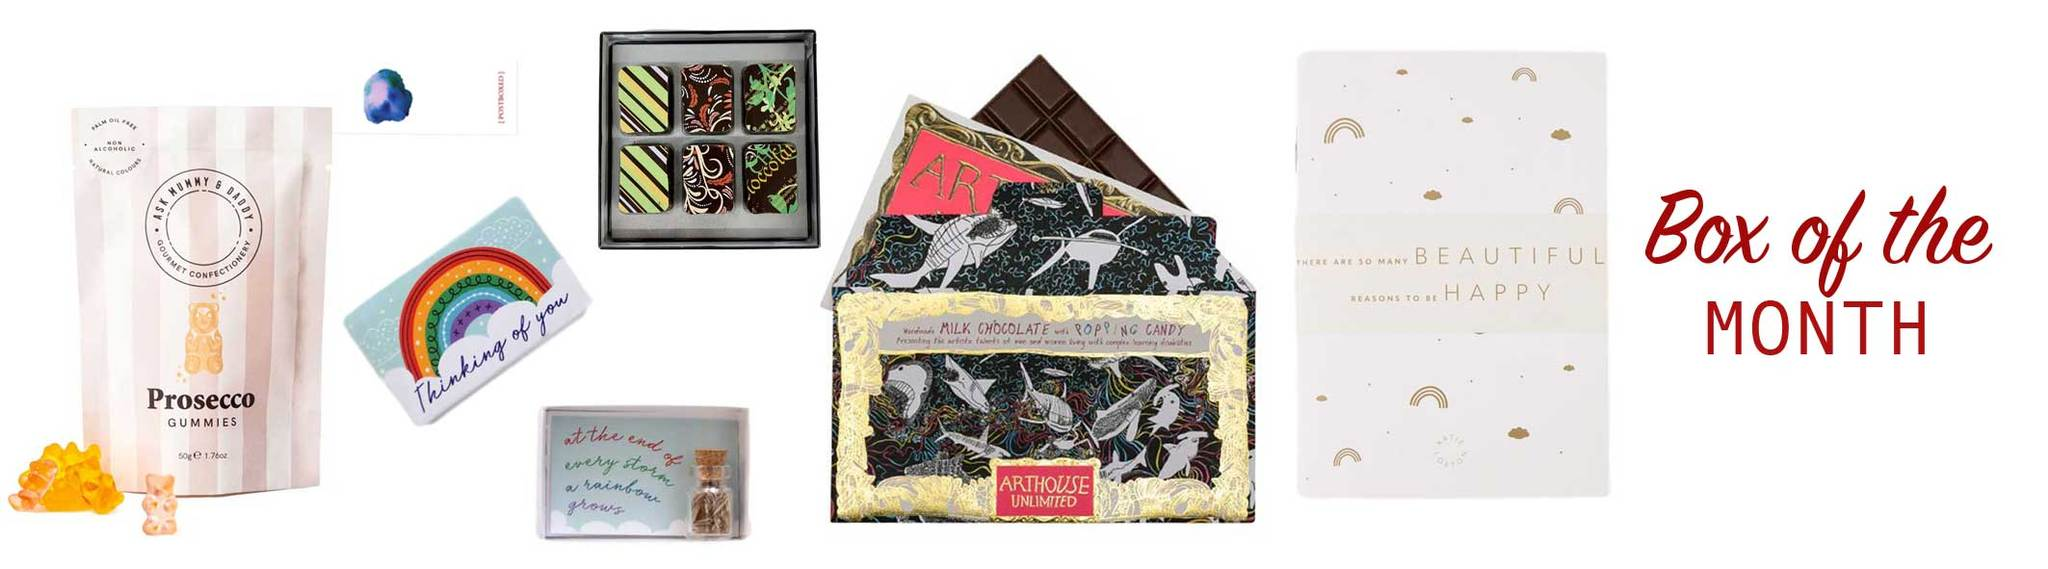 Postboxed Gift Box Of The Month